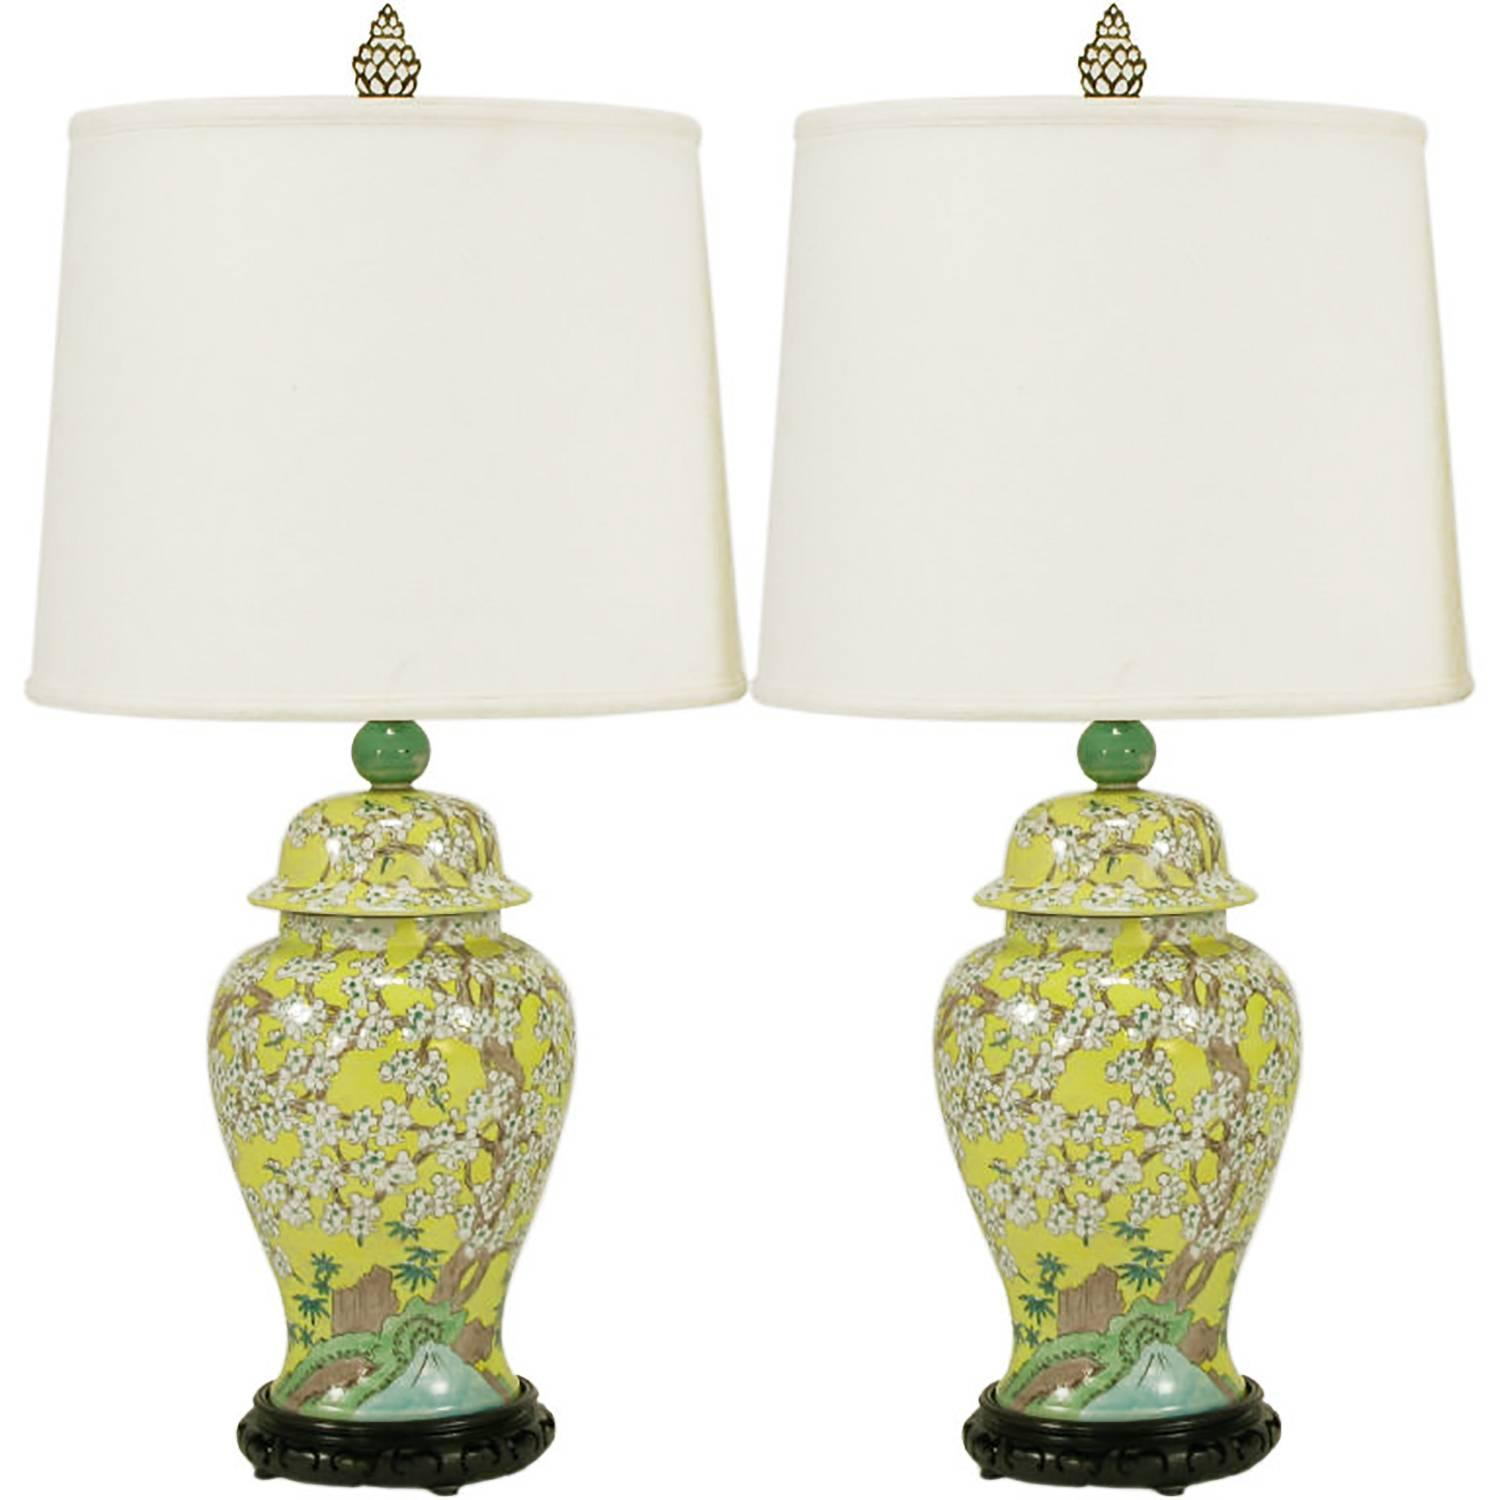 hand painted yellow glaze ginger jar table lamps for sale at 1stdibs. Black Bedroom Furniture Sets. Home Design Ideas